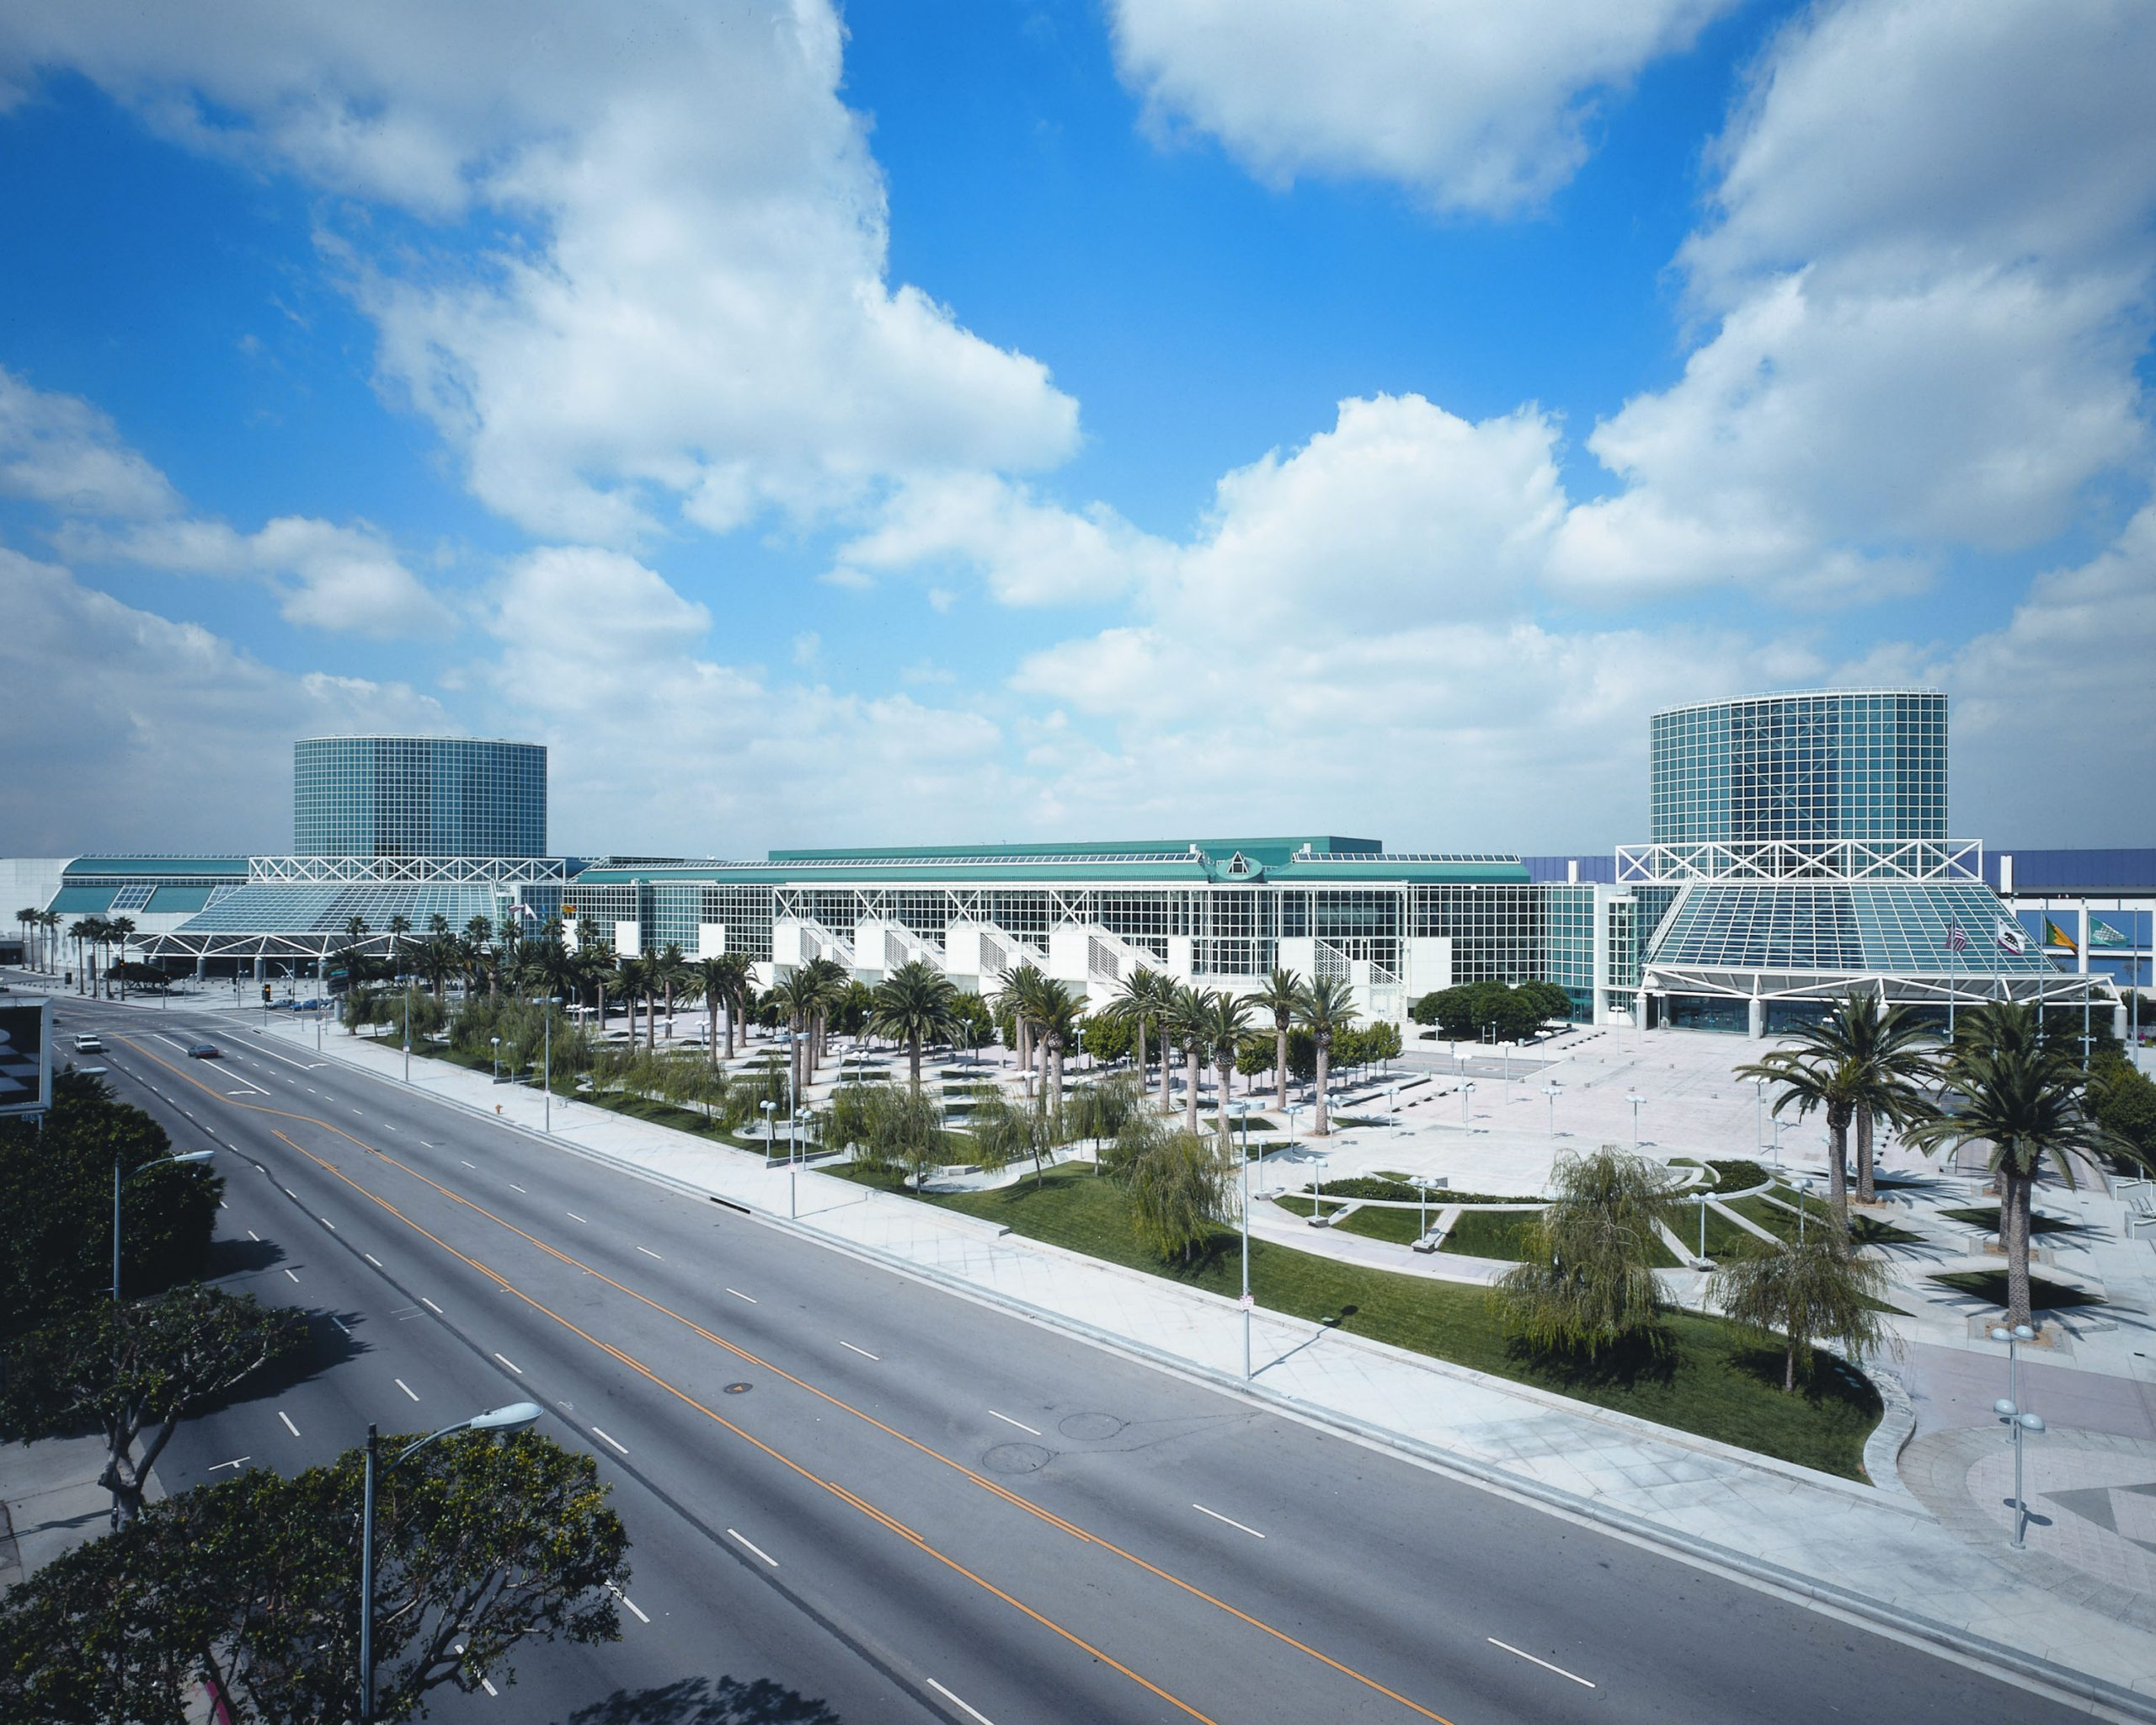 Smart City Networks renews contract with Los Angeles Convention Center